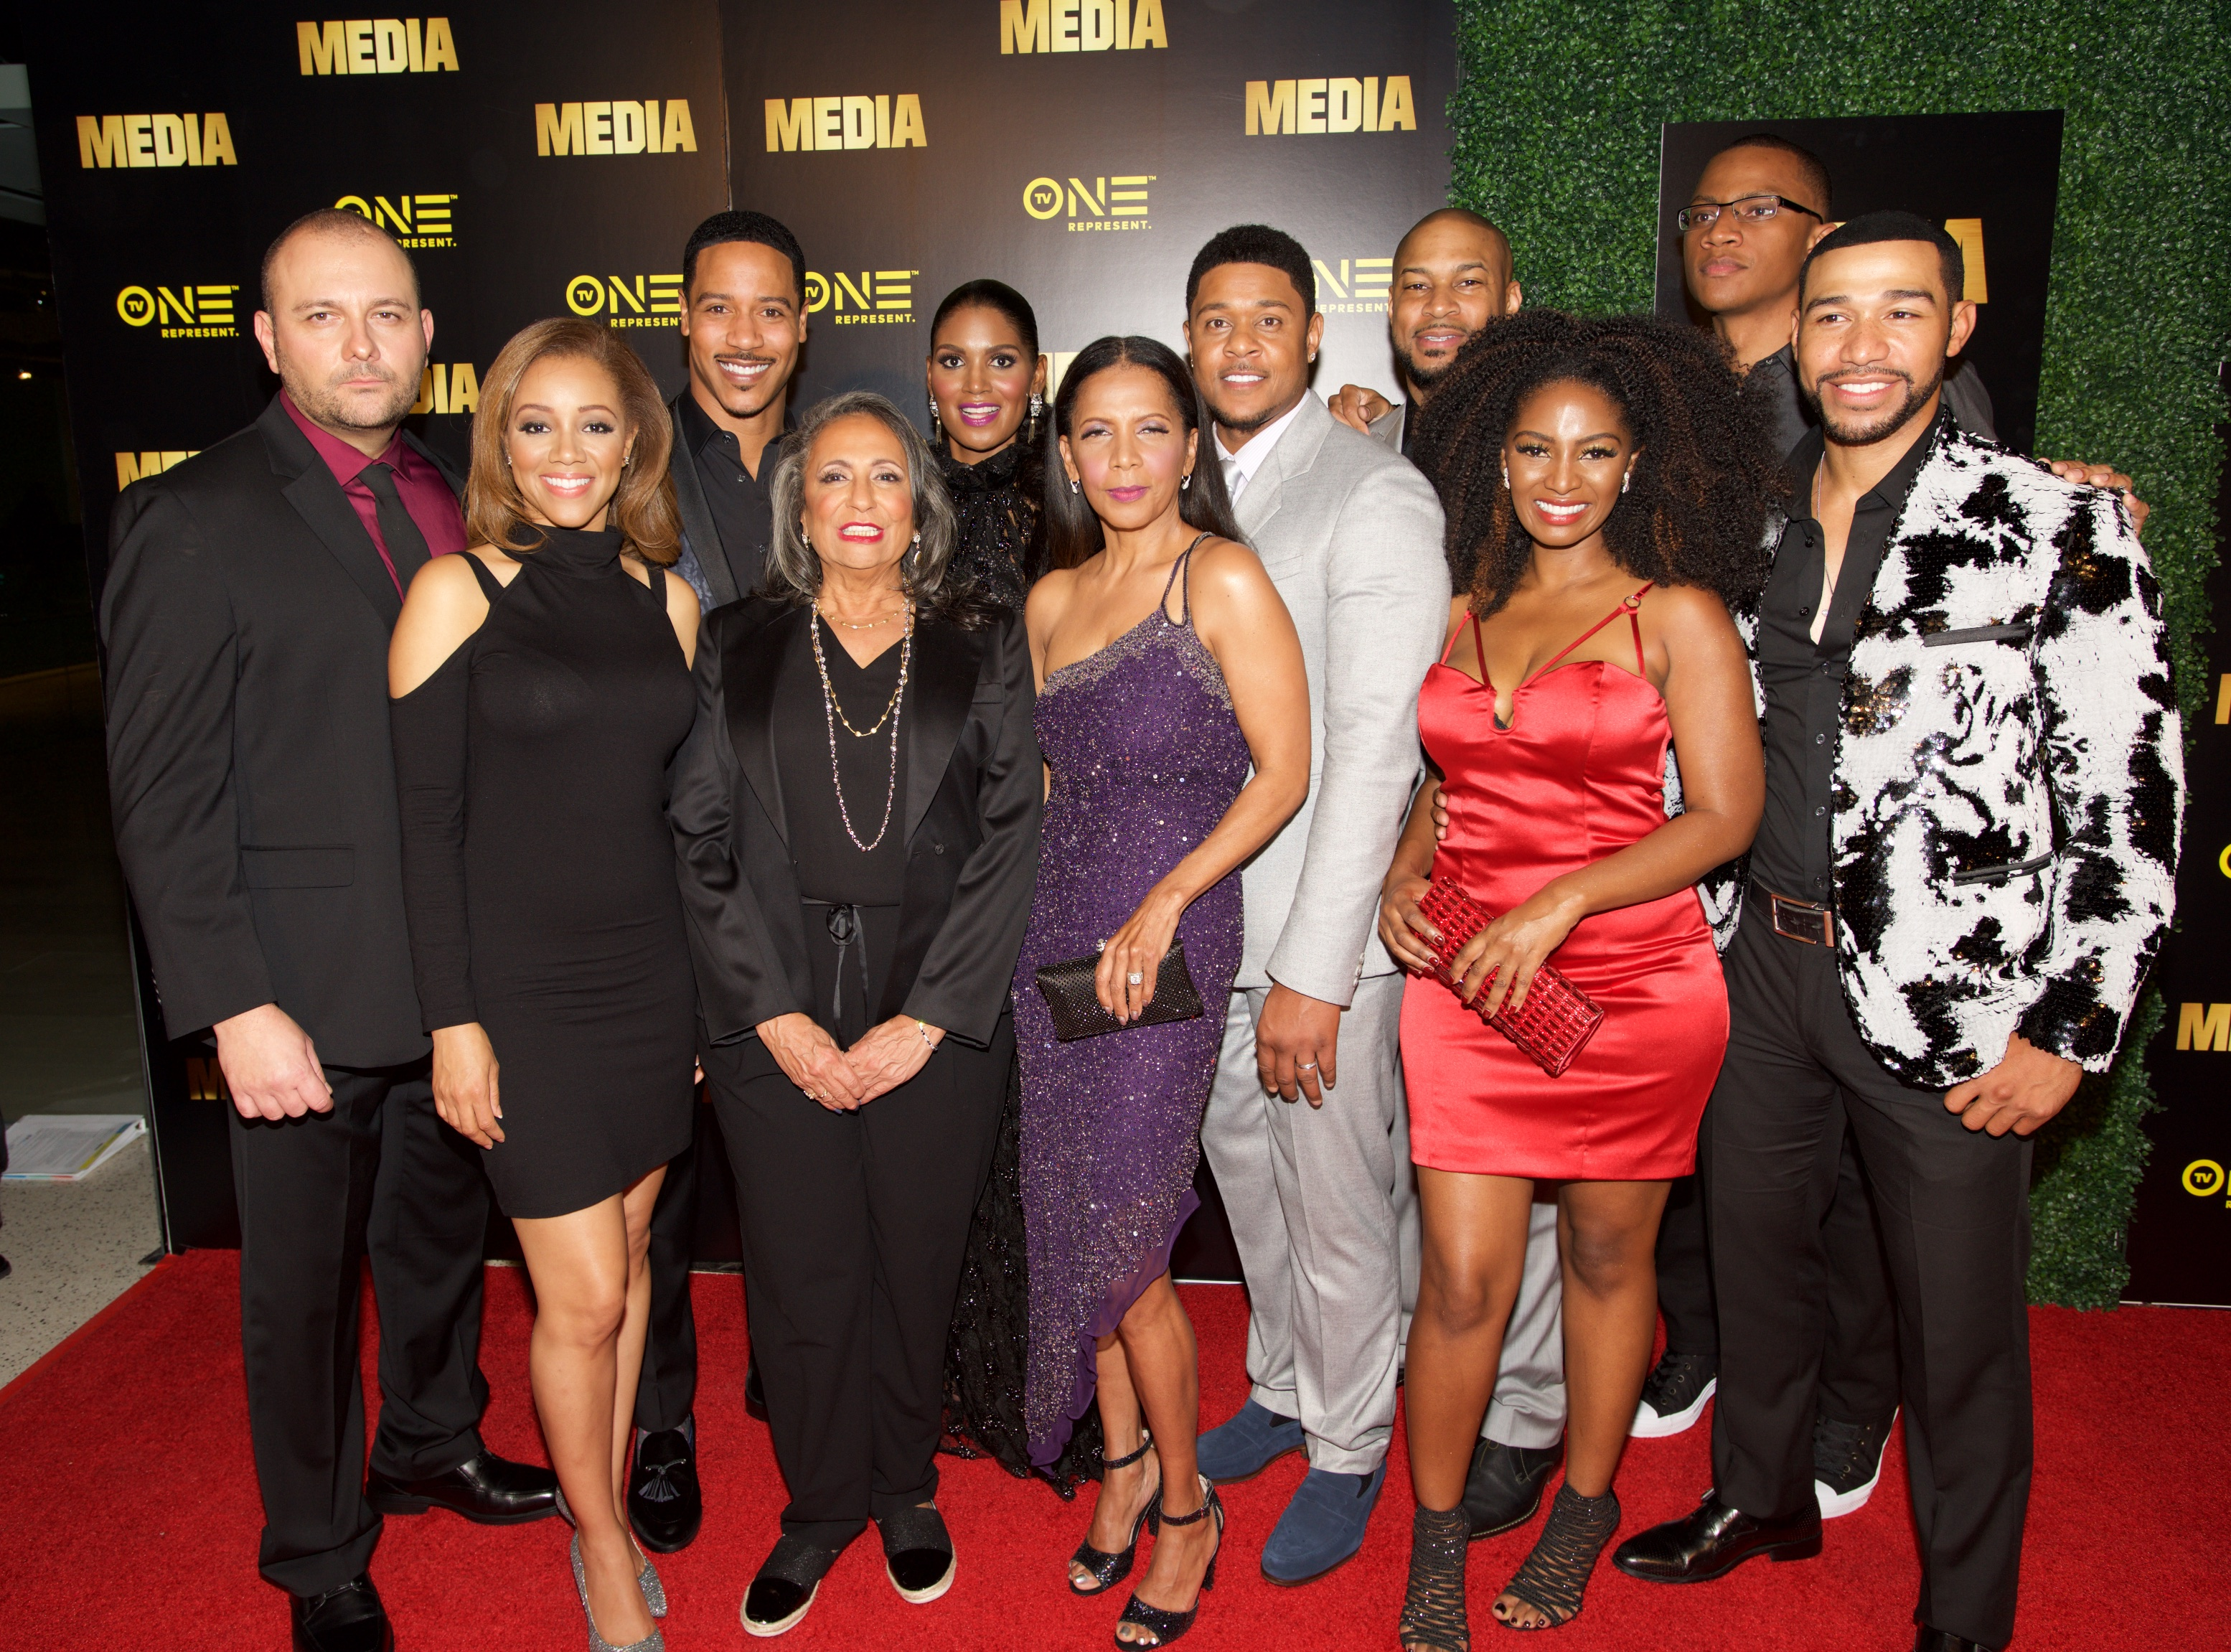 Premiere Of TV One's 'Media' - Arrivals